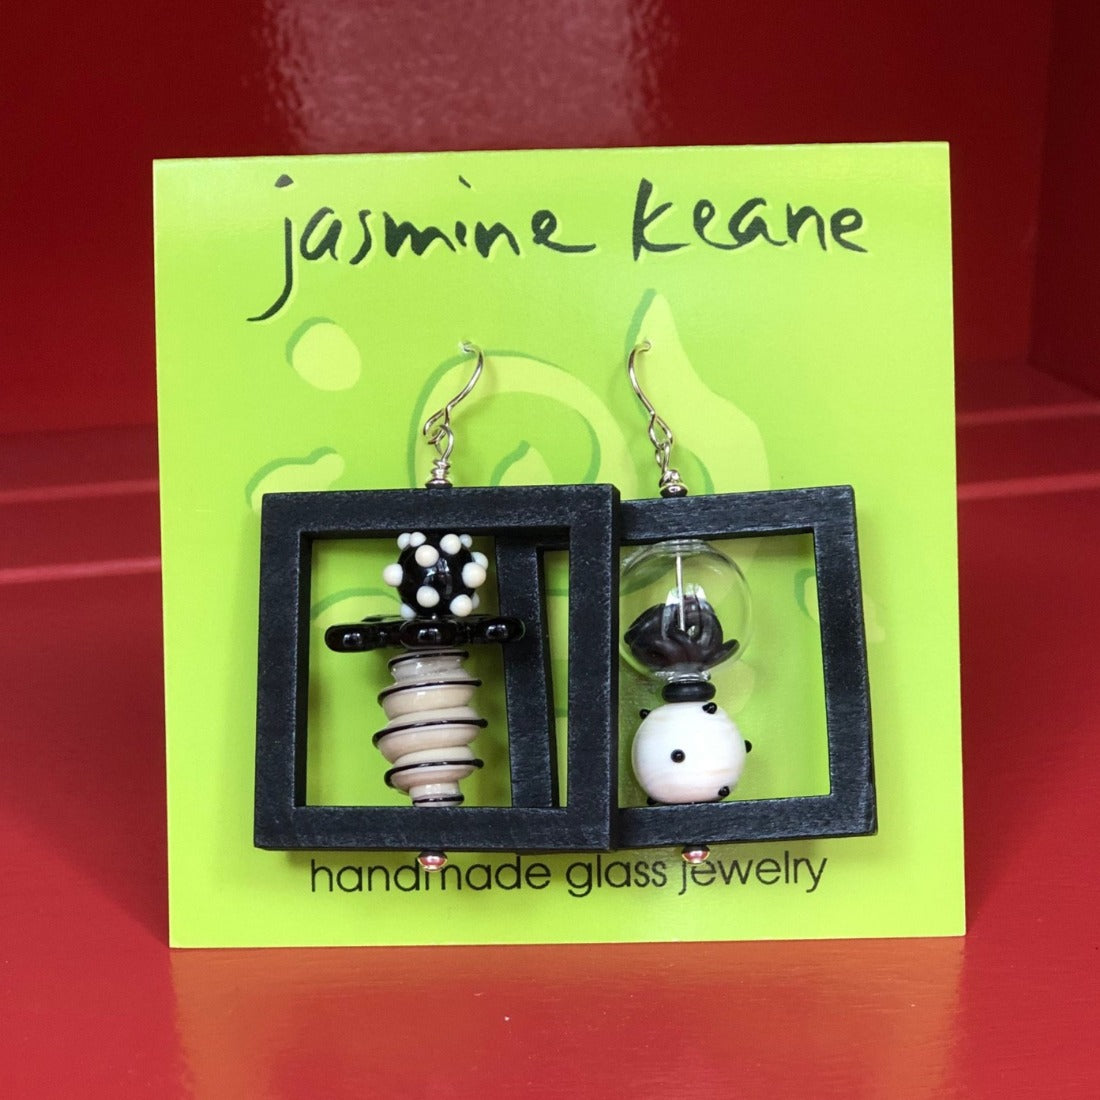 Black Window Earrings by Jasmine Keane